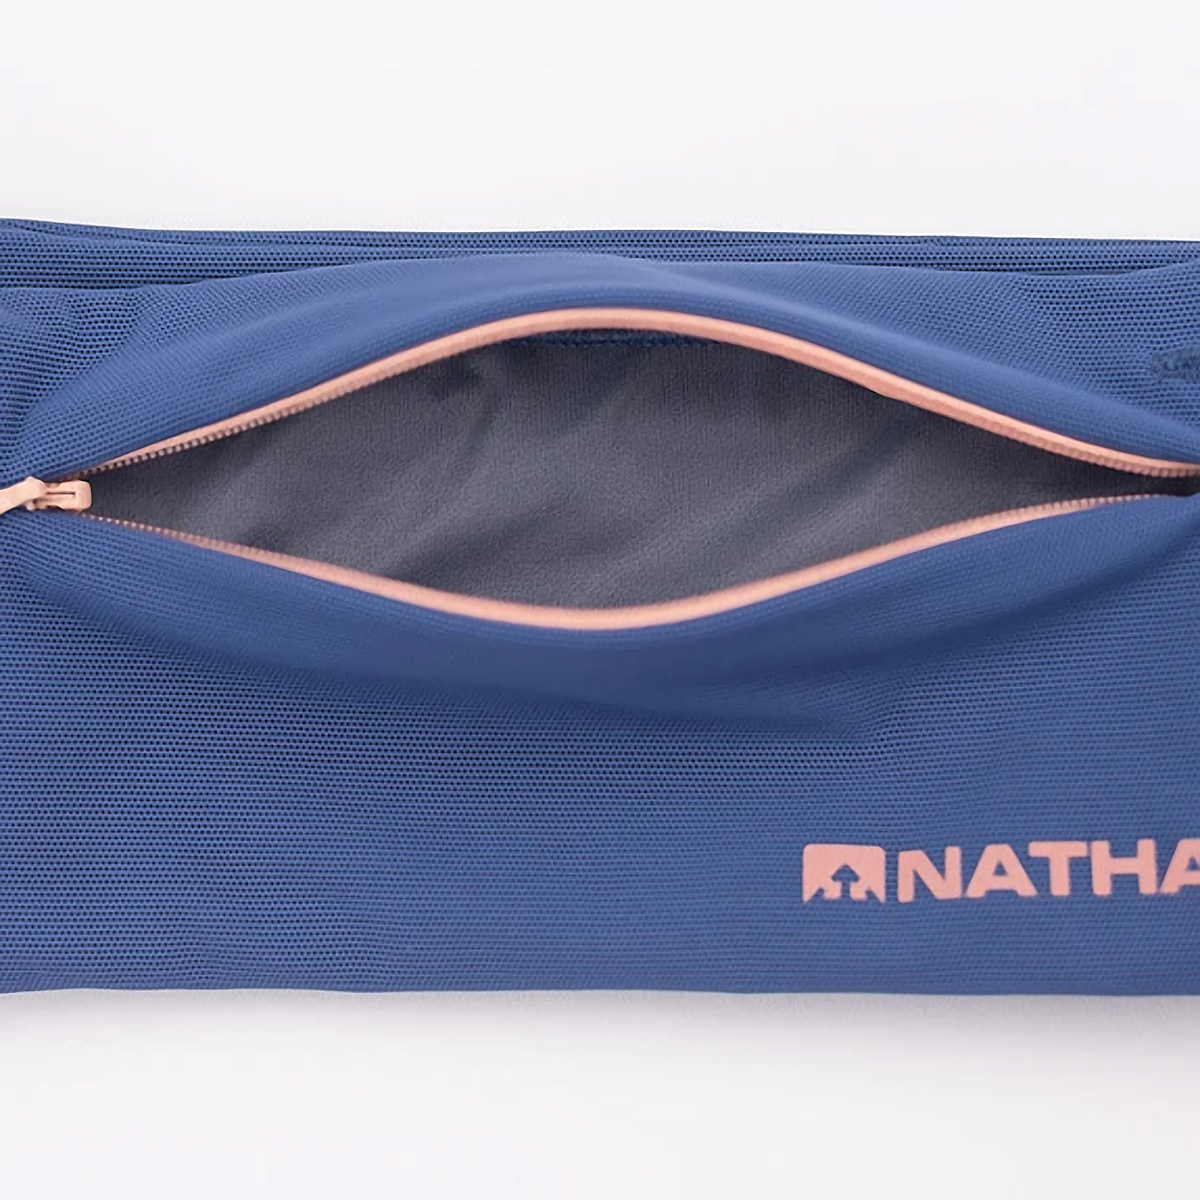 Nathan The Zipster Lite Training Waist Belt - Color: True Navy/Rose - Size: XS - Width:, True Navy/Rose, large, image 4